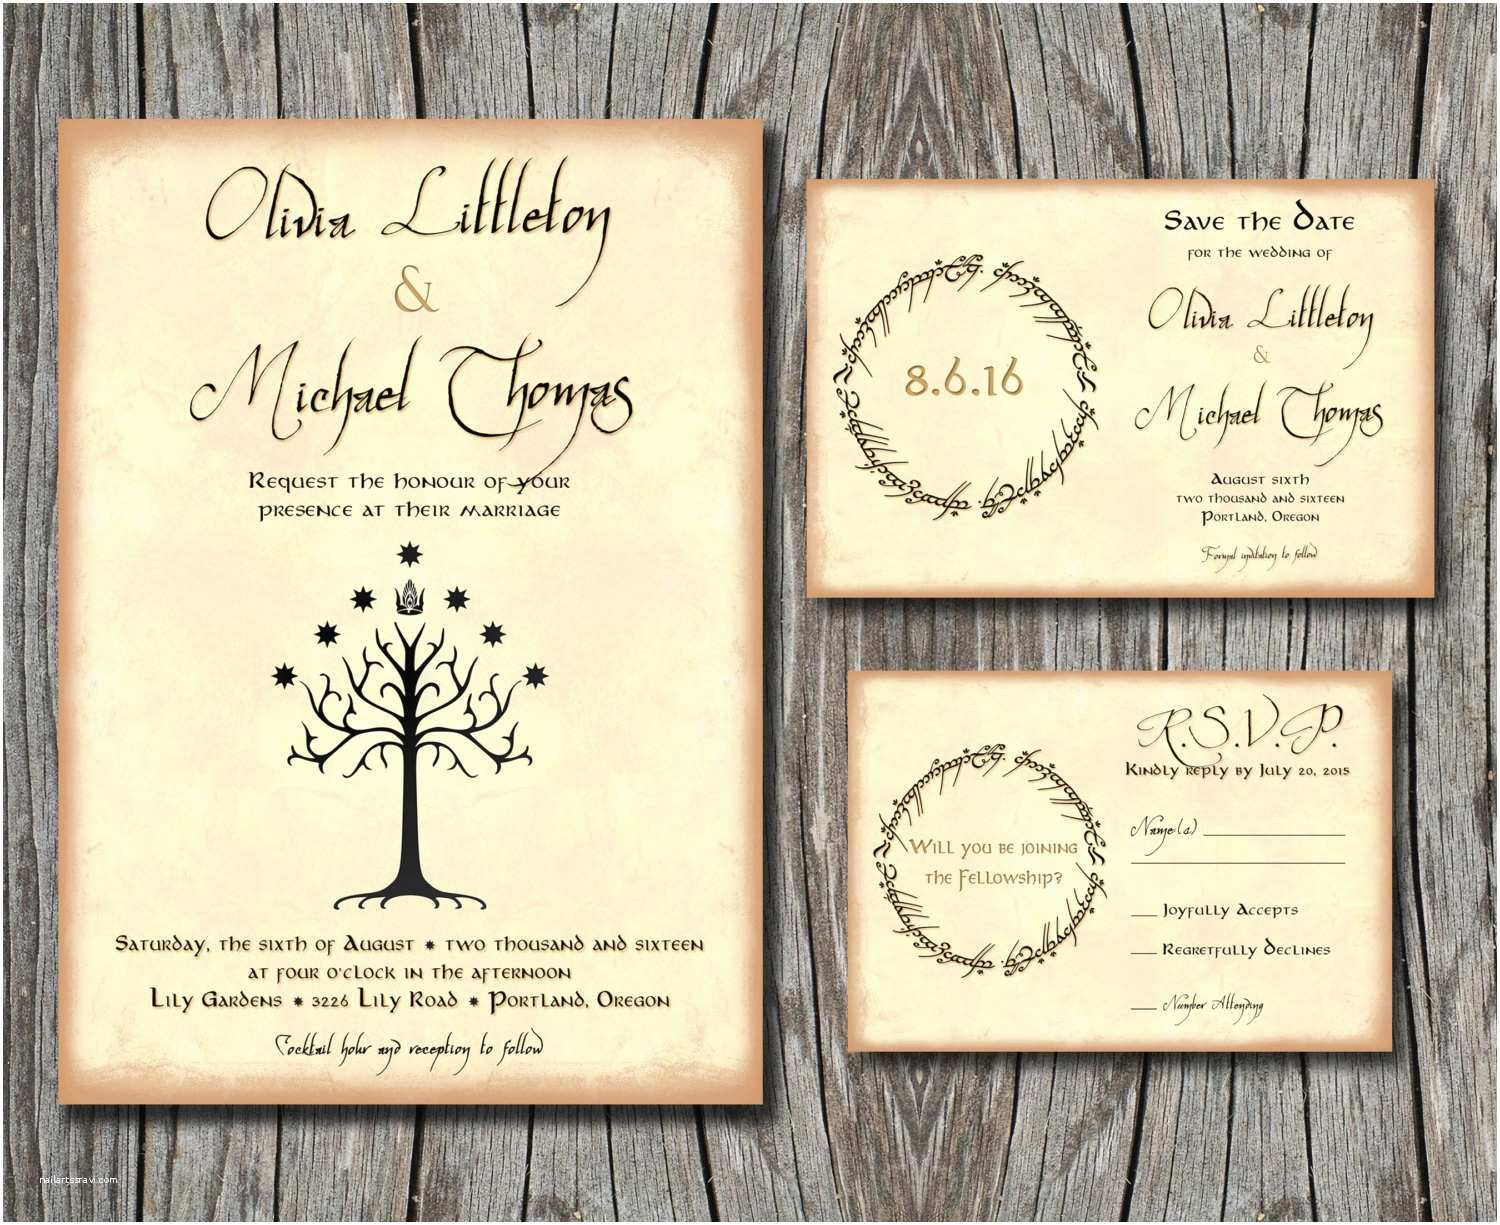 Lord Of the Rings Wedding Invitations Lord Of the Rings Wedding Invitation Set Save the by